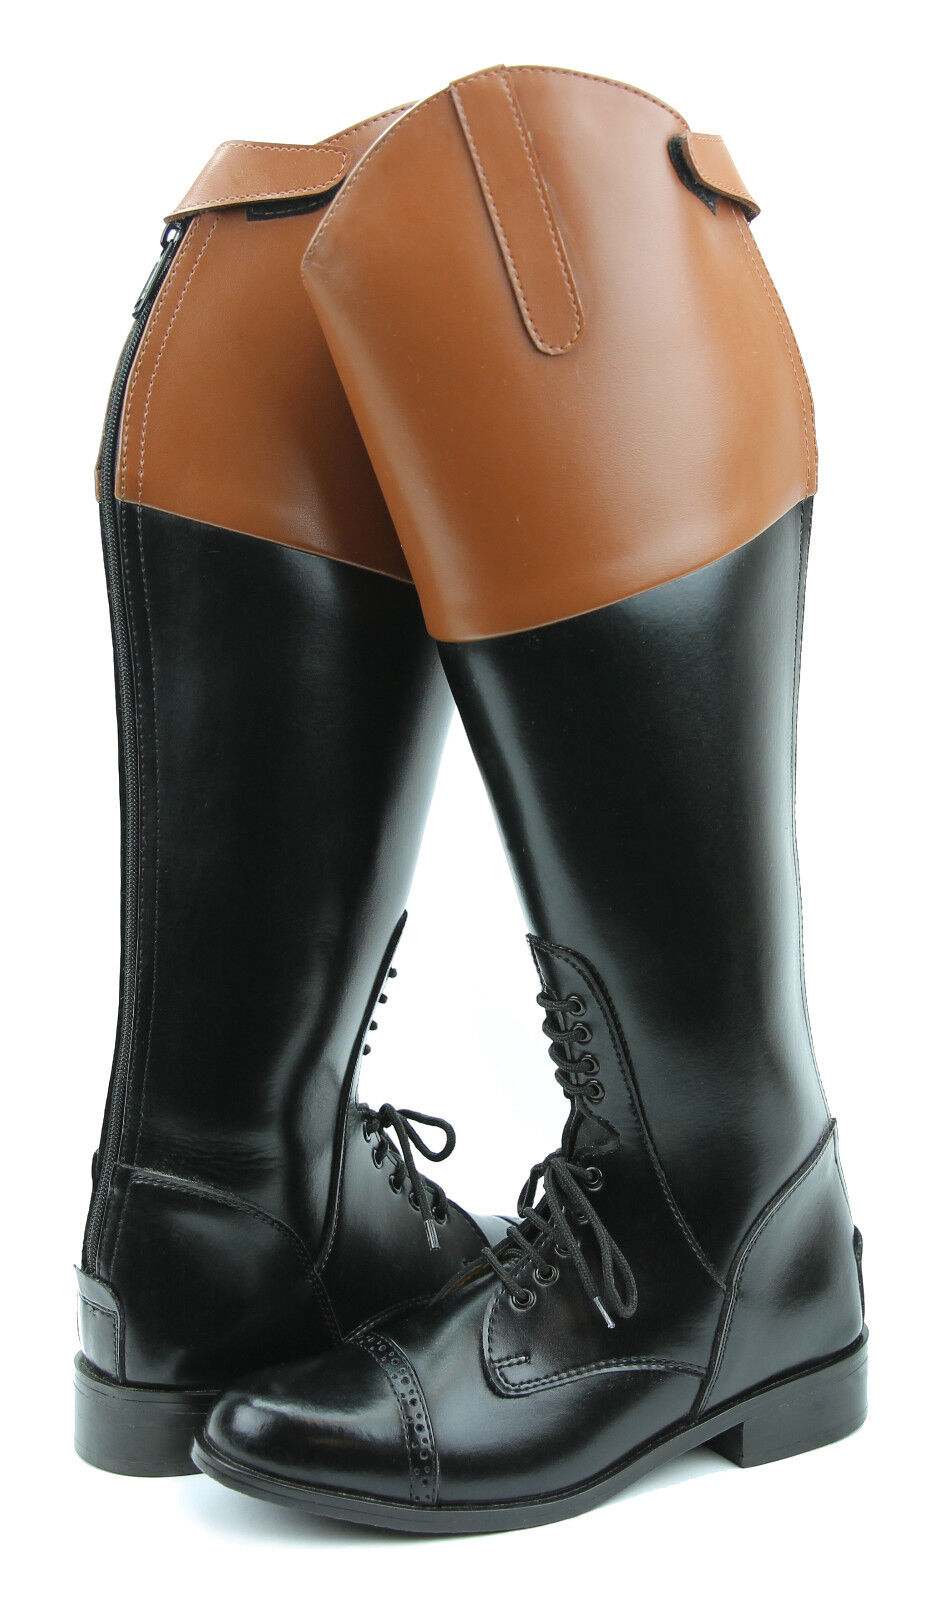 Hispar ROYAL Donna ladies Field Fox Hunt Hunting Stivali With With With Back Zipper Tan Top d00c51